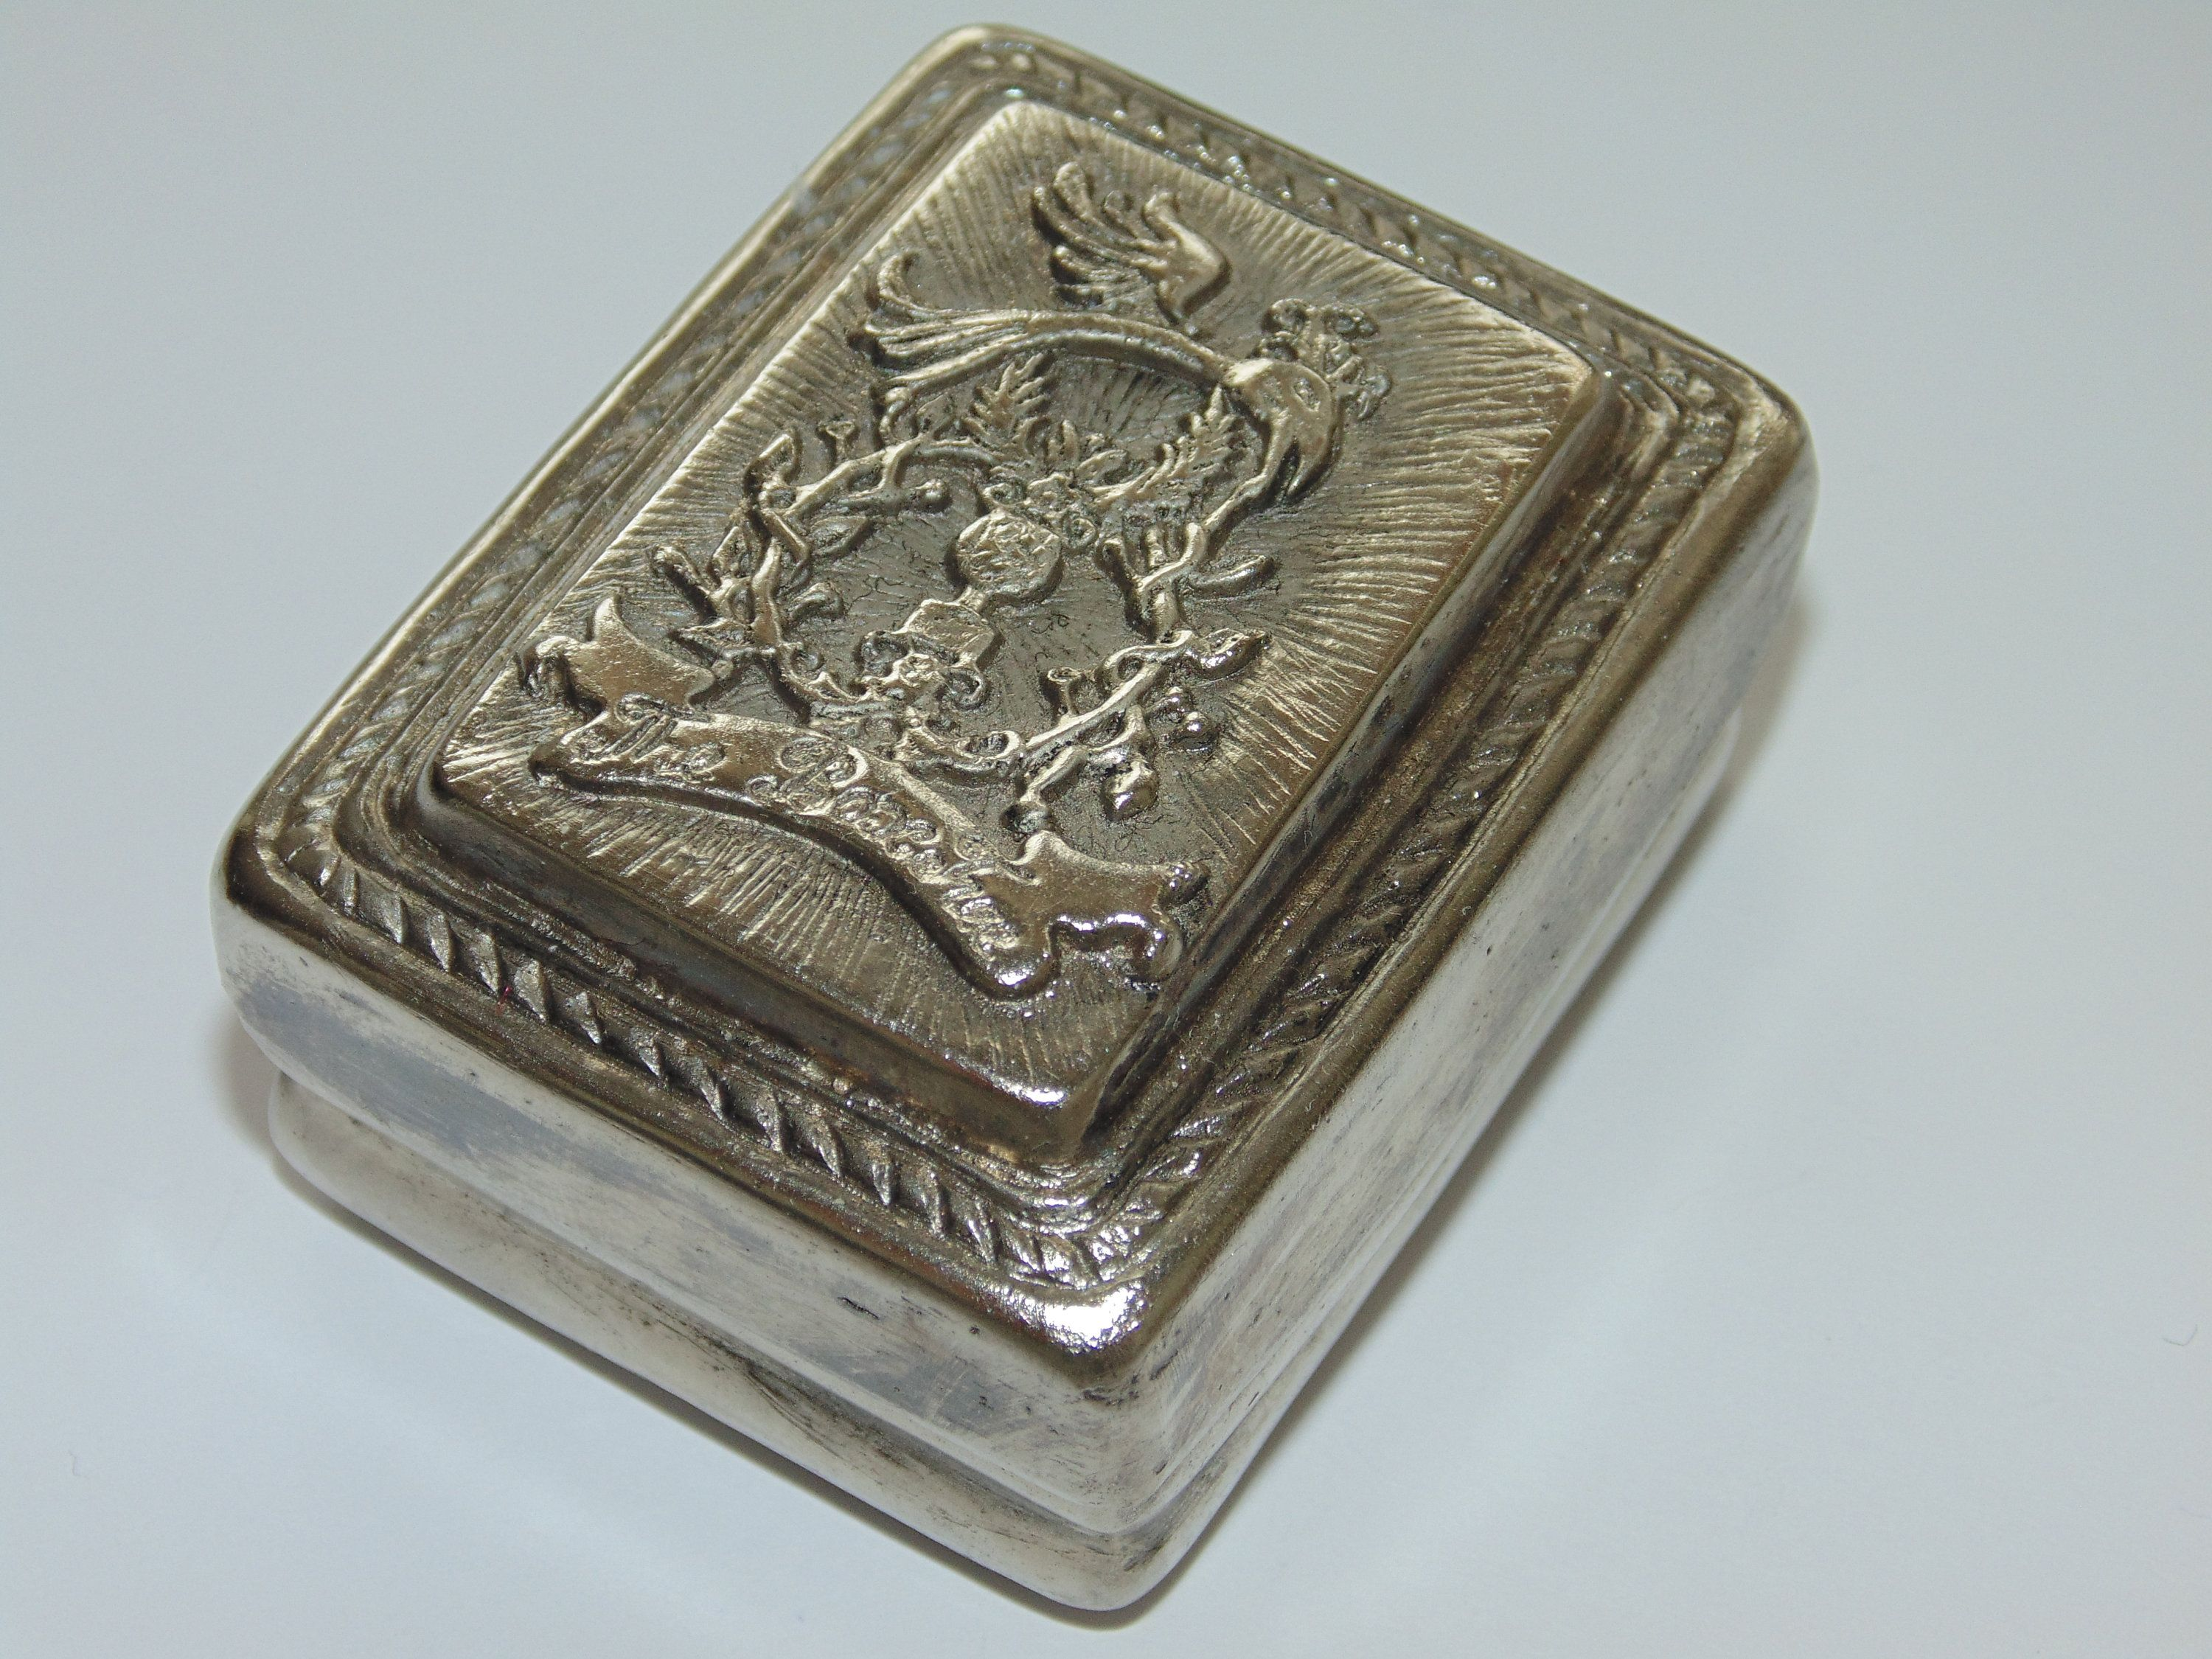 Rare Vintage Estate Hard Tin Case Ornate Crest Lid Jewelry Trinket Storage Keepsake Silver Tone Collectible Antique Ring Box Gift For Her In 2020